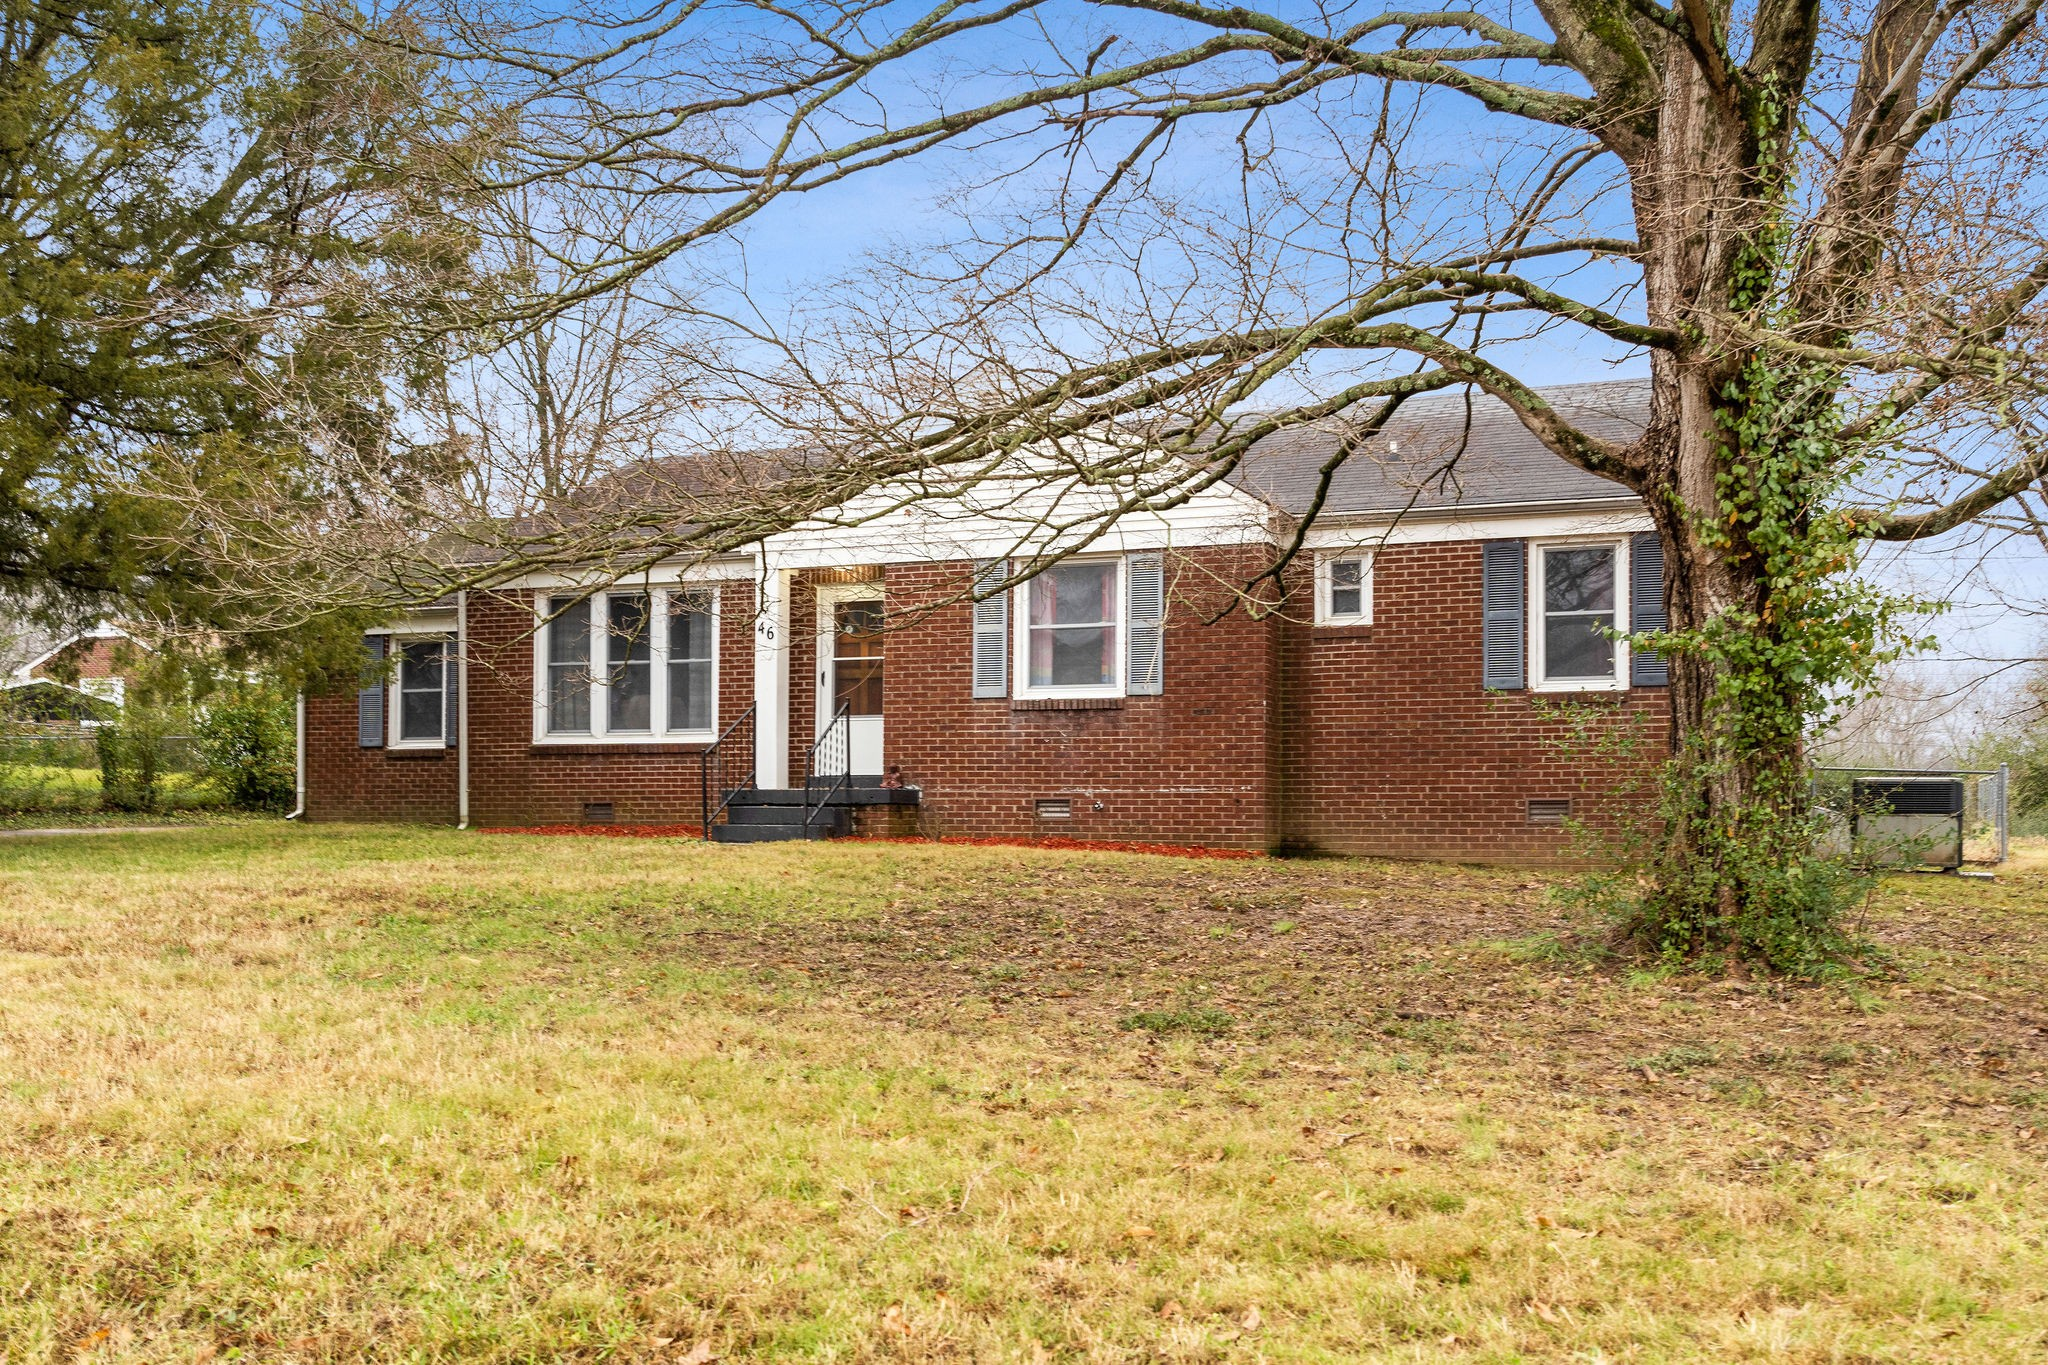 Check Out This Picture Perfect, Ranch Home - Conveniently Located Close to Fort Campbell - Oversized Fenced Backyard with Storage Shed - All Kitchen Appliances Convey - NEW Paint - This is a MUST SEE!